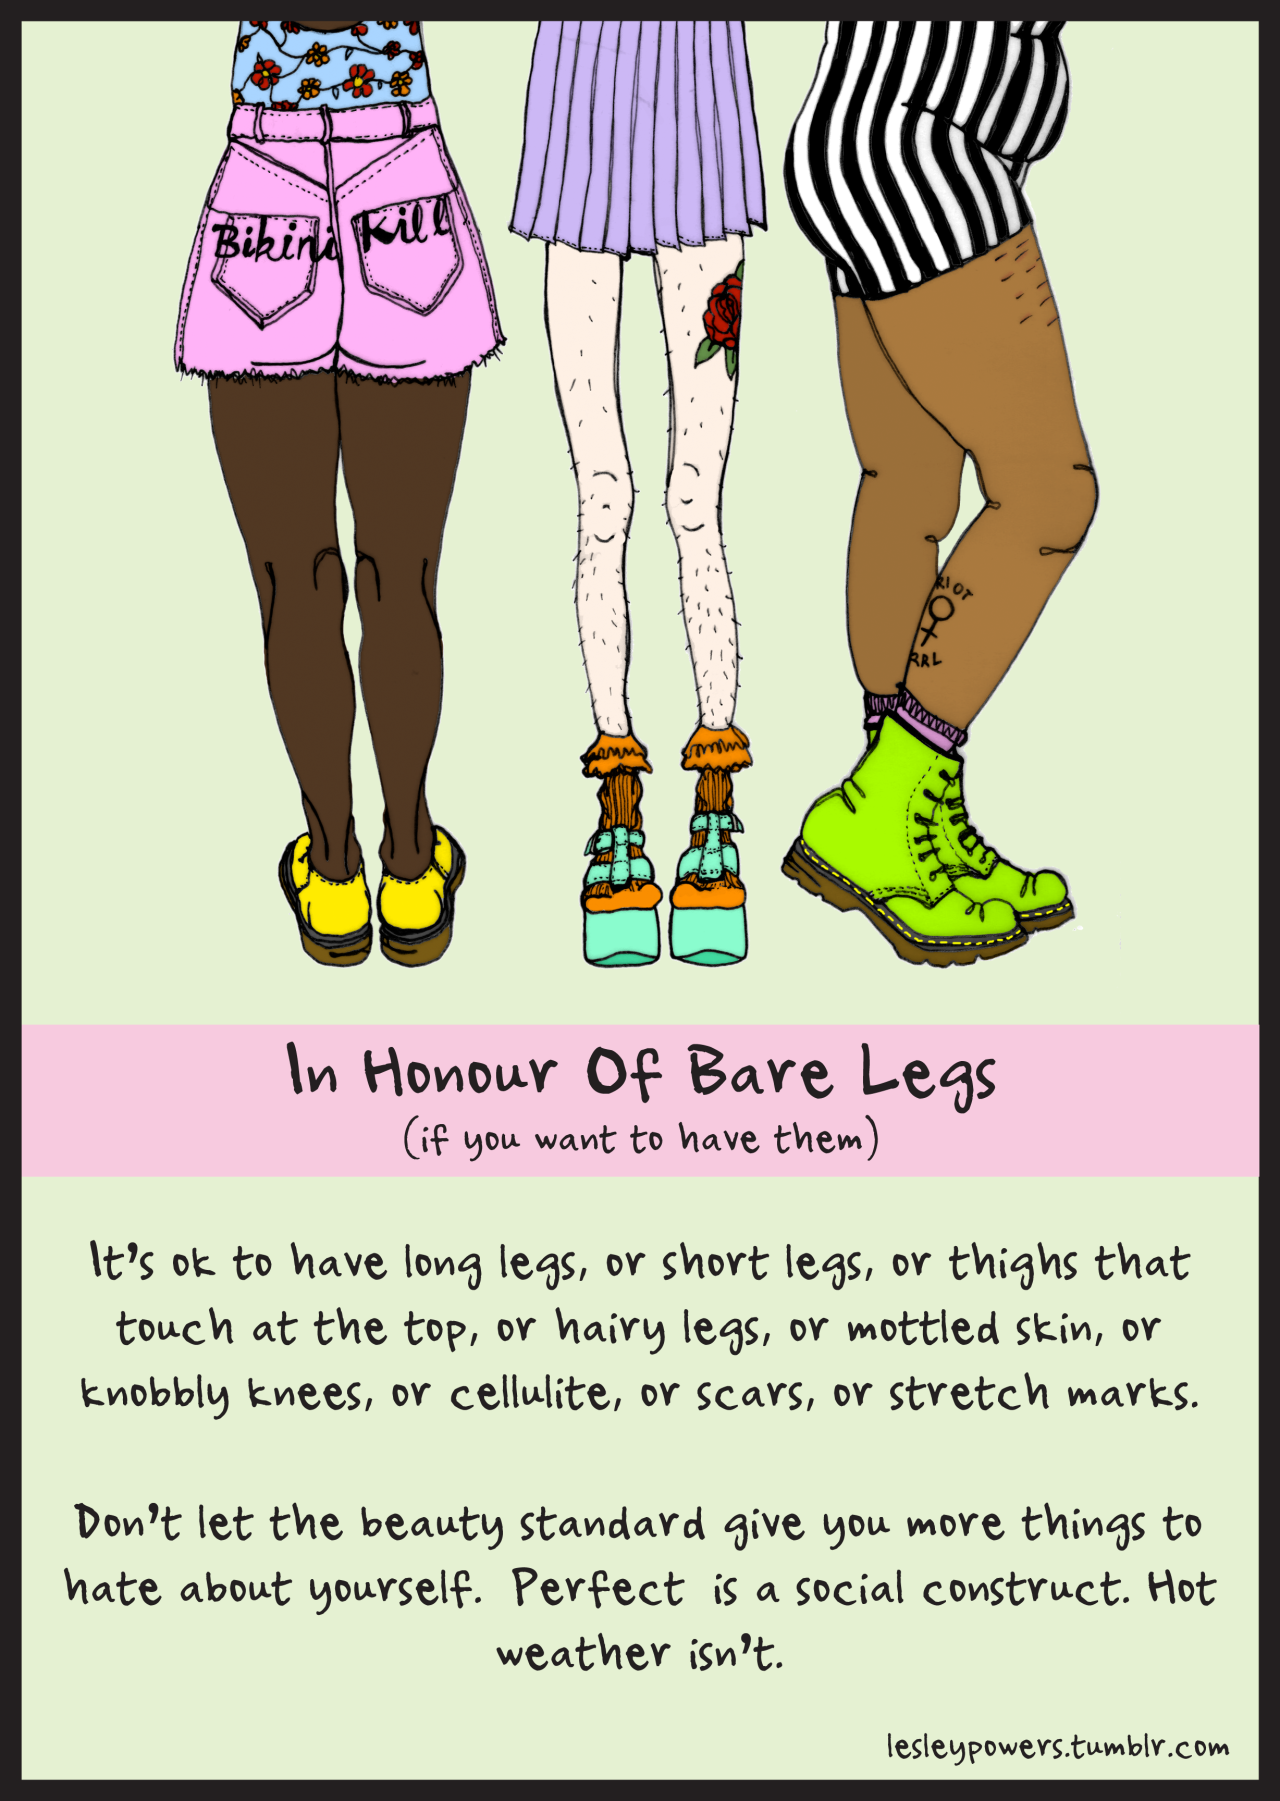 "goodbodiesareallbodies:  [ three people with various leg types. left person is wearing pink shorts and yellow shoes and appears to have smooth legs with thighs that touch, middle person has pale, hairy, thin legs and is wearing heels with socks? and a purple pleated skirt,right person has on green boots,  and a striped skirt and has thick thighs and scars.  texts ""In Honour of Bare Legs ( if you want to have them ) It's okay to have long legs, or short legs, or thighs that touch at the top, or hairy legs, or mottled skin, or knoggly knees, or cellulite, or scars, or stretch marks. Don't let the beauty standard give you more things to hate about yourself. Perfect is a social construct. Hot weather isn't.""] Haha, I love the last two sentences. - Sam"